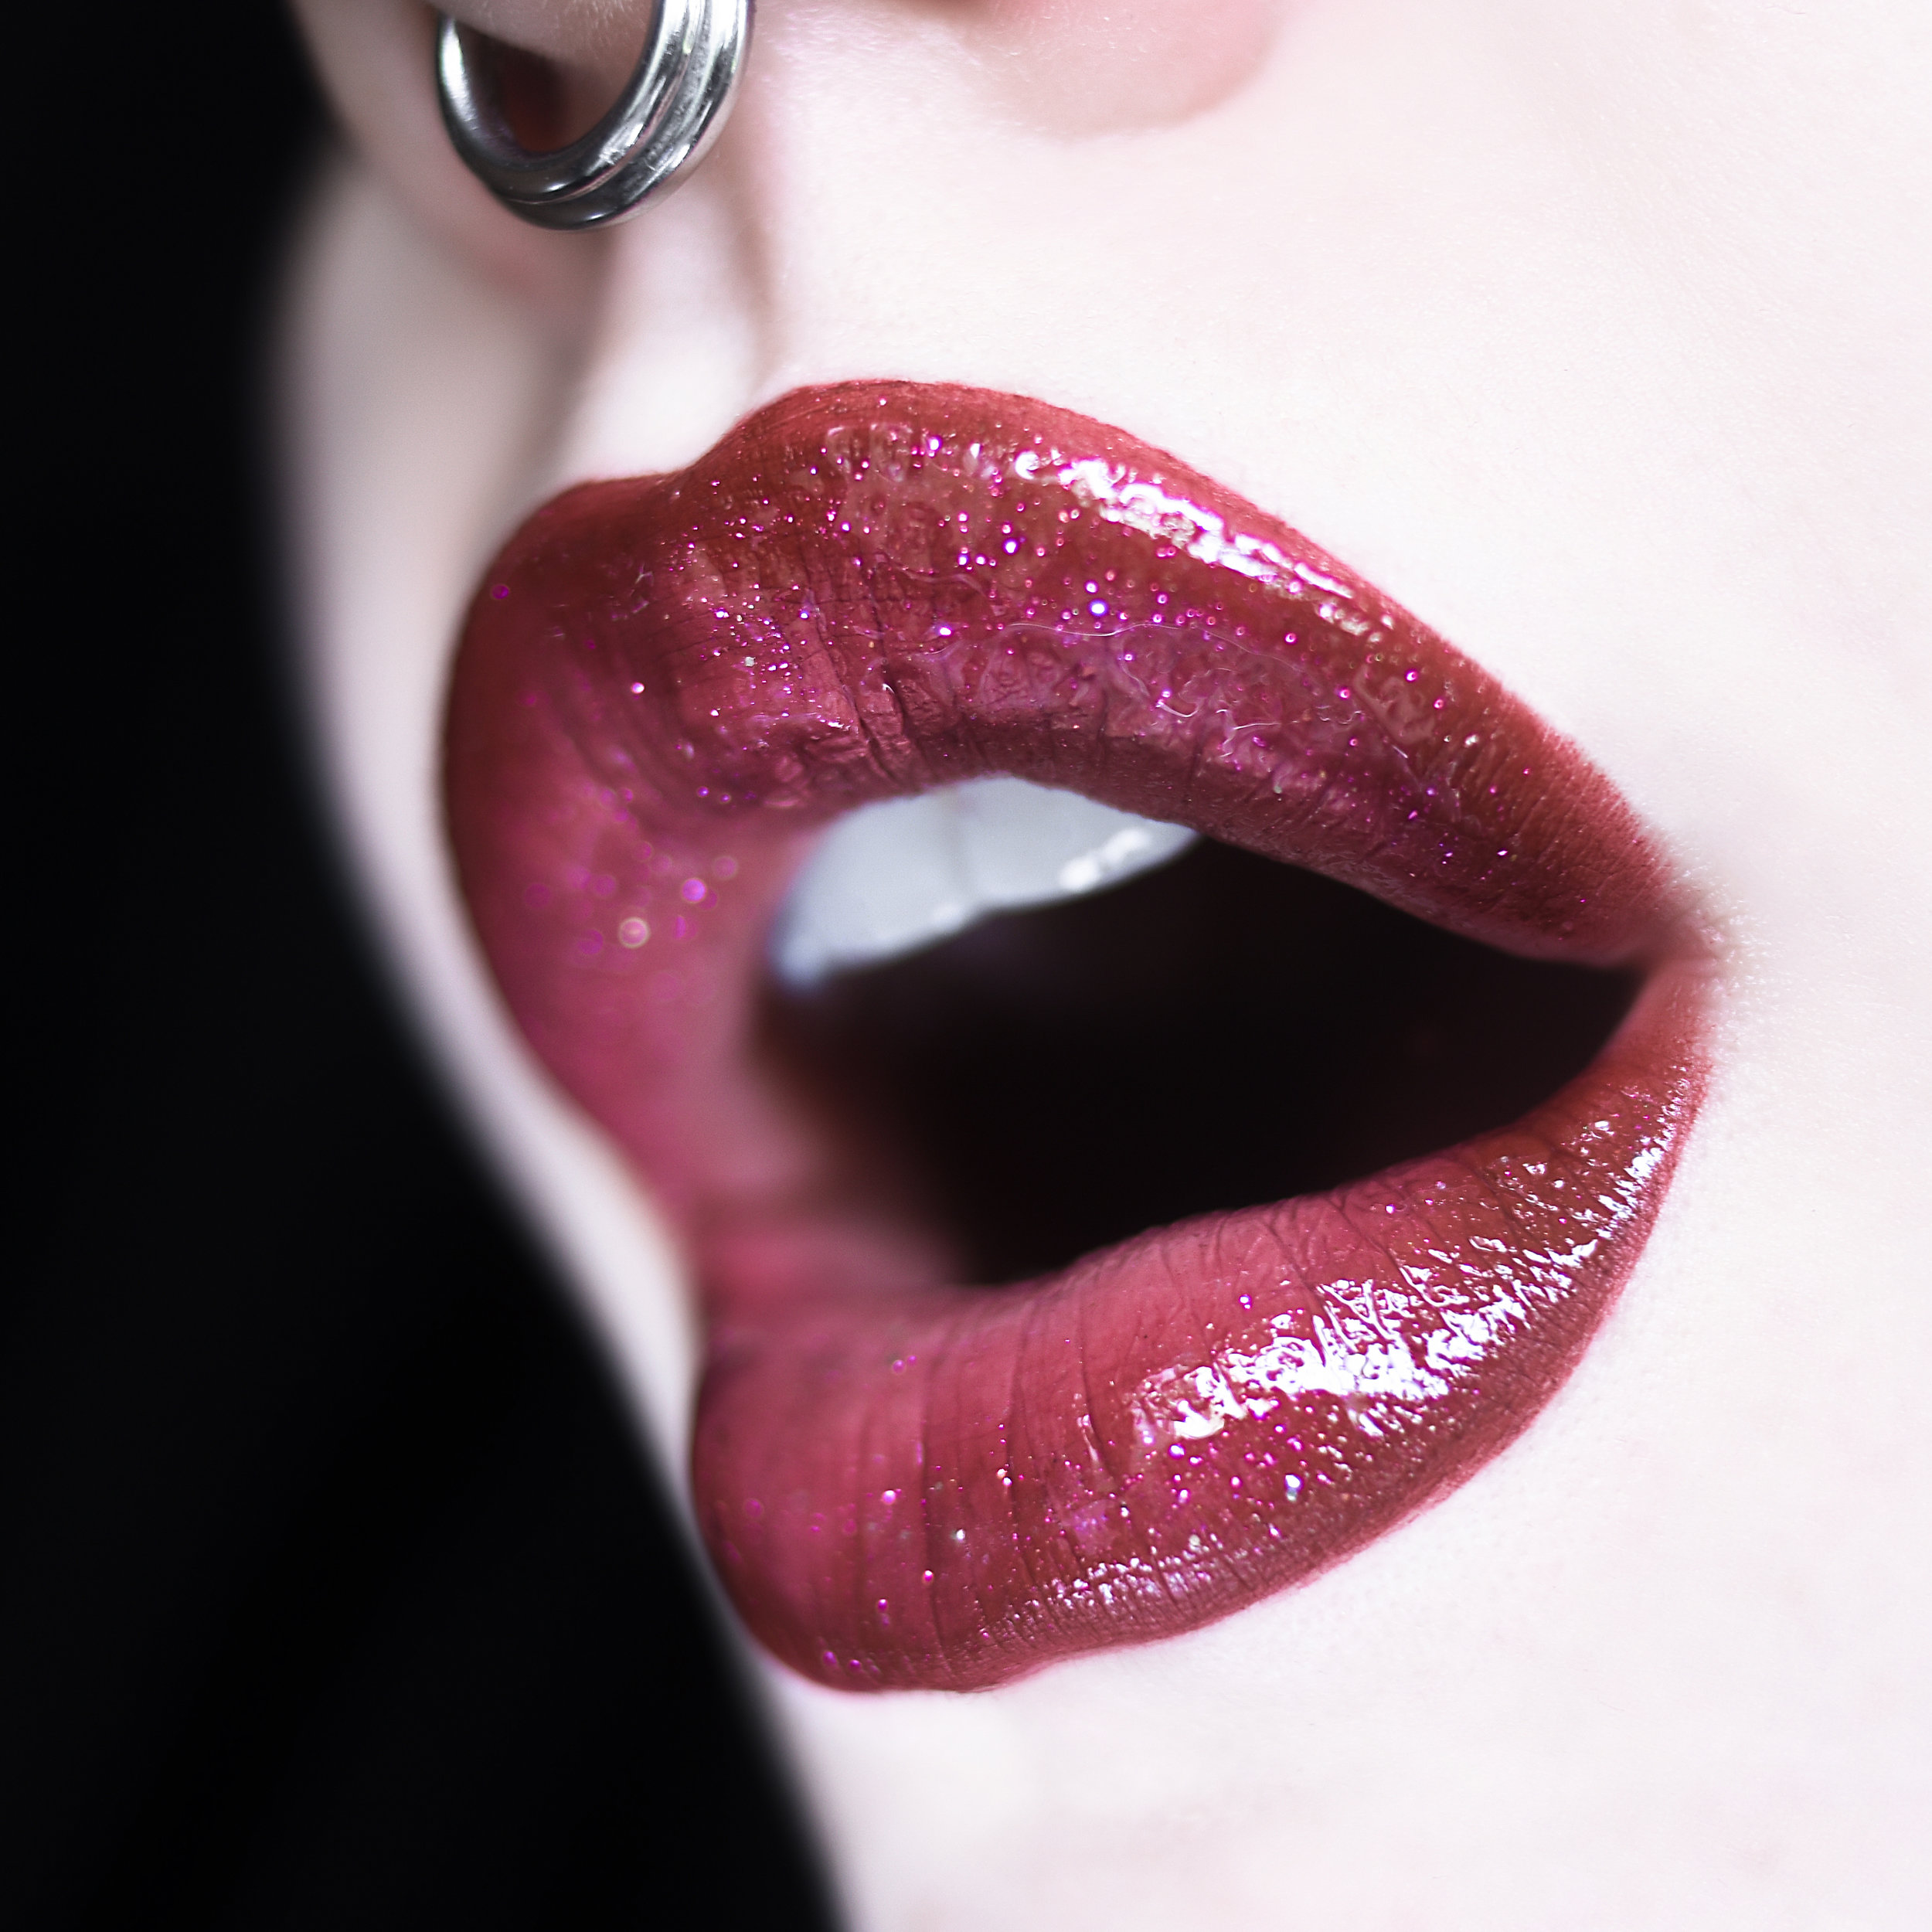 """Wearing """"Lustful"""" and """"Butt Naked."""" Topped with sparkly, pink gloss."""